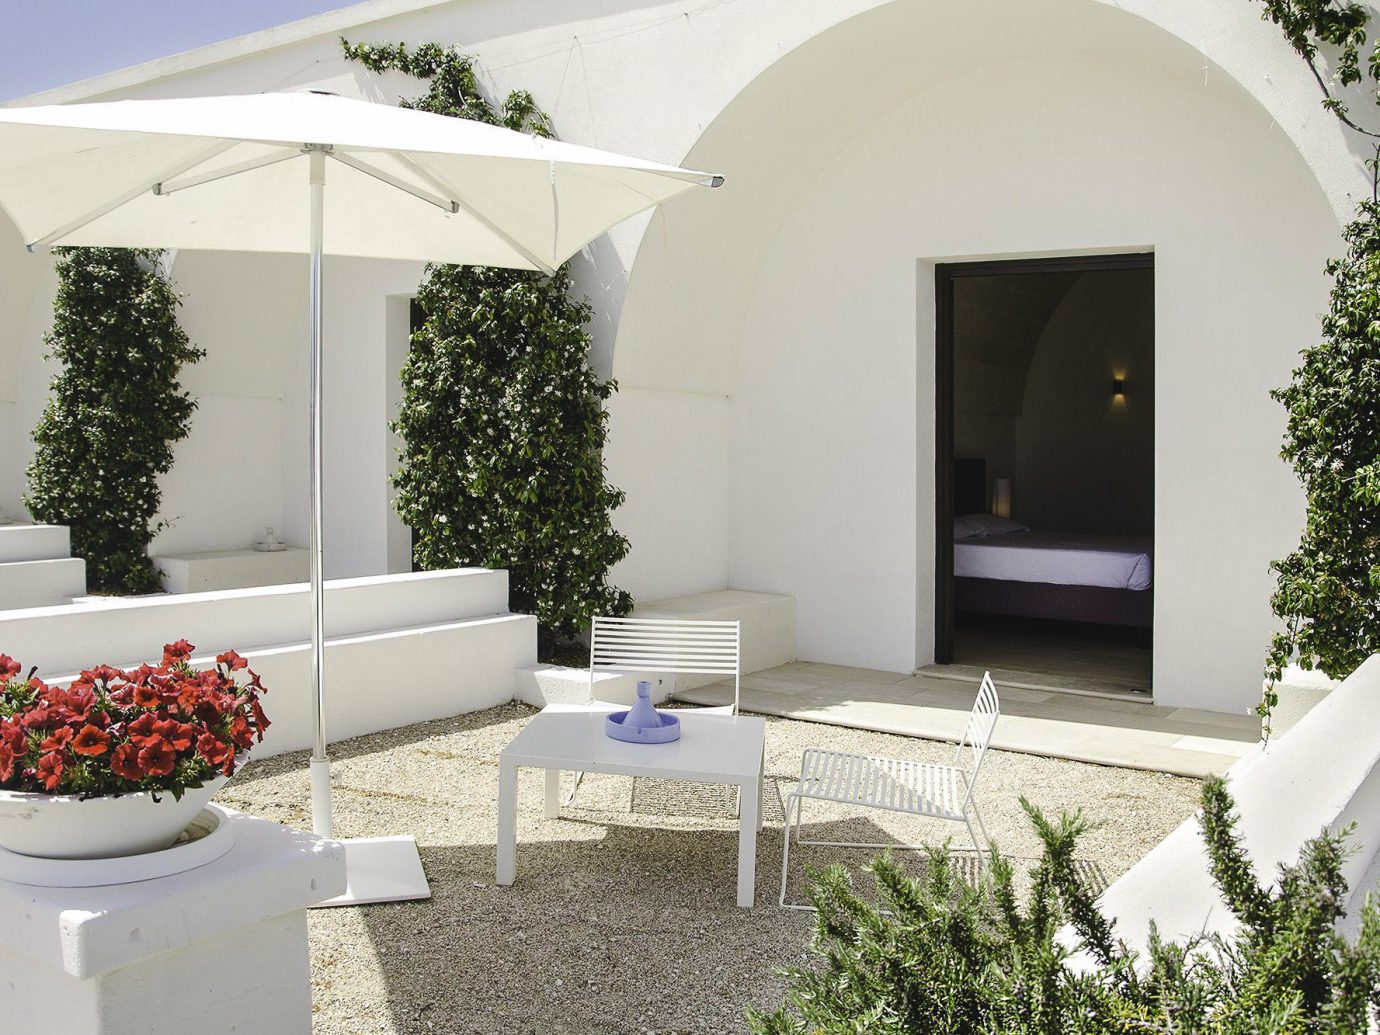 Boutique Hotels Hotels Trip Ideas tree property outdoor Architecture house real estate estate Courtyard Villa home shade outdoor structure backyard facade furniture